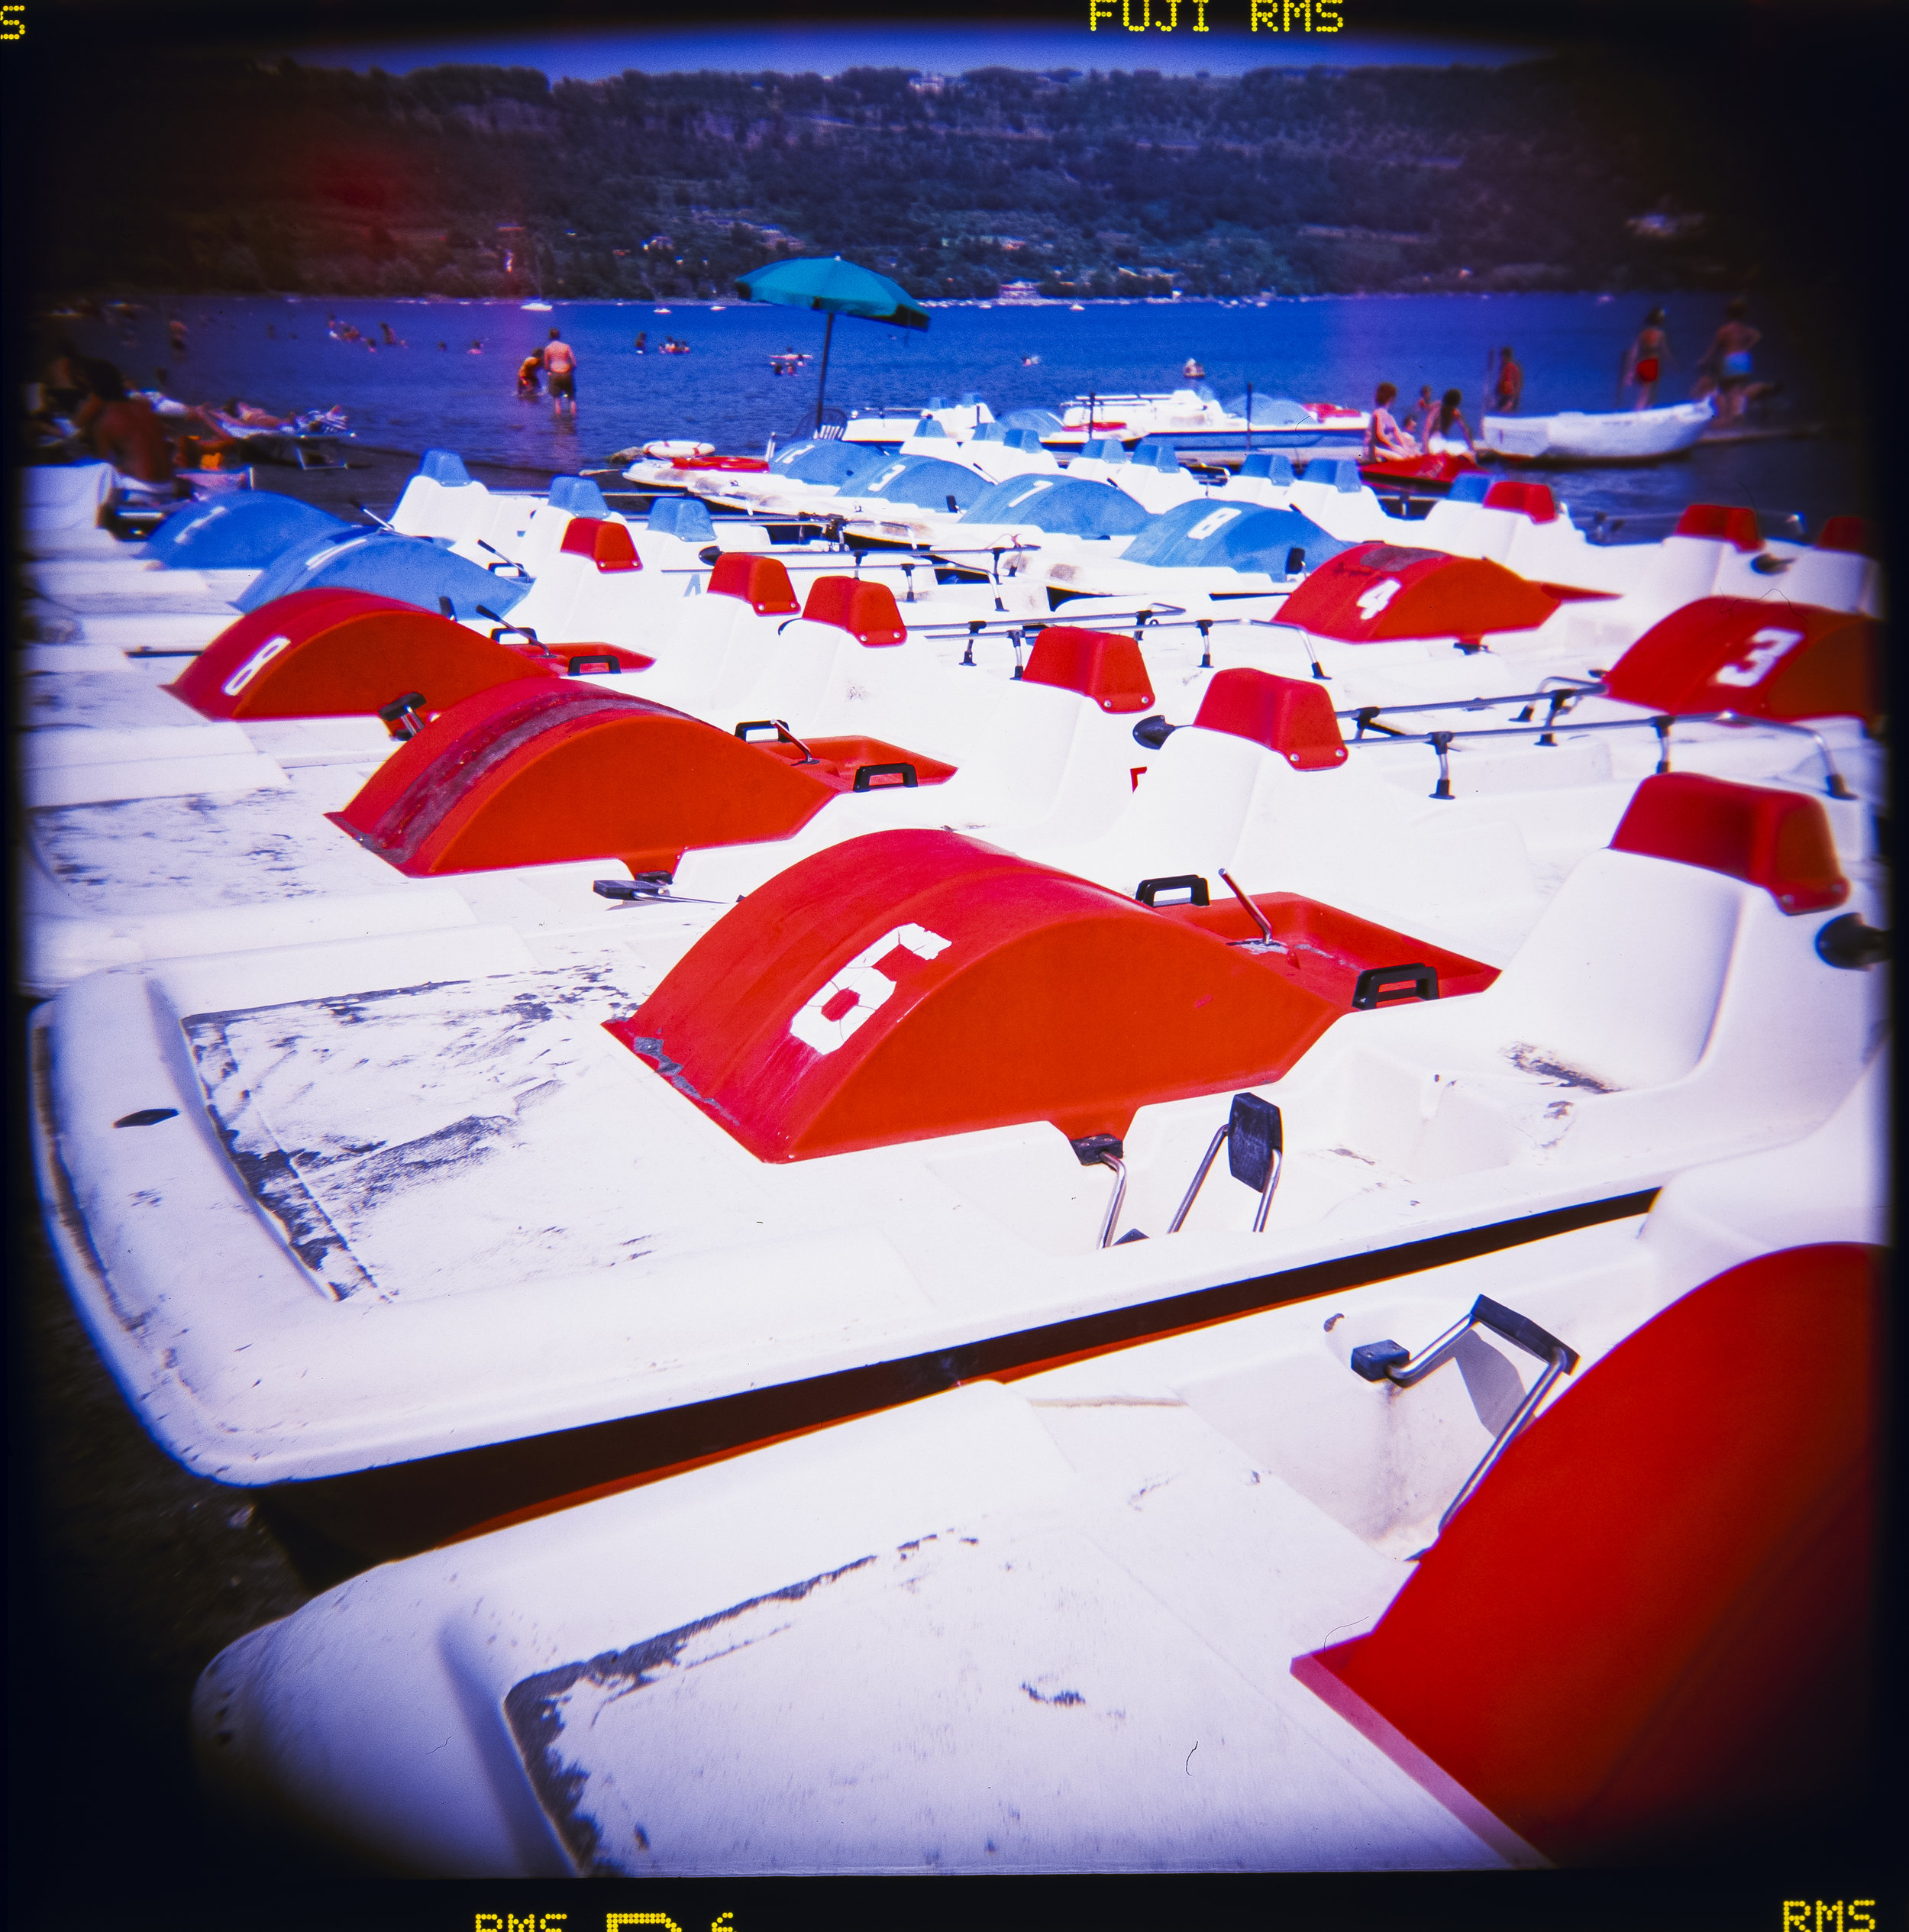 Peddle Boats, Italian Beach, Holga